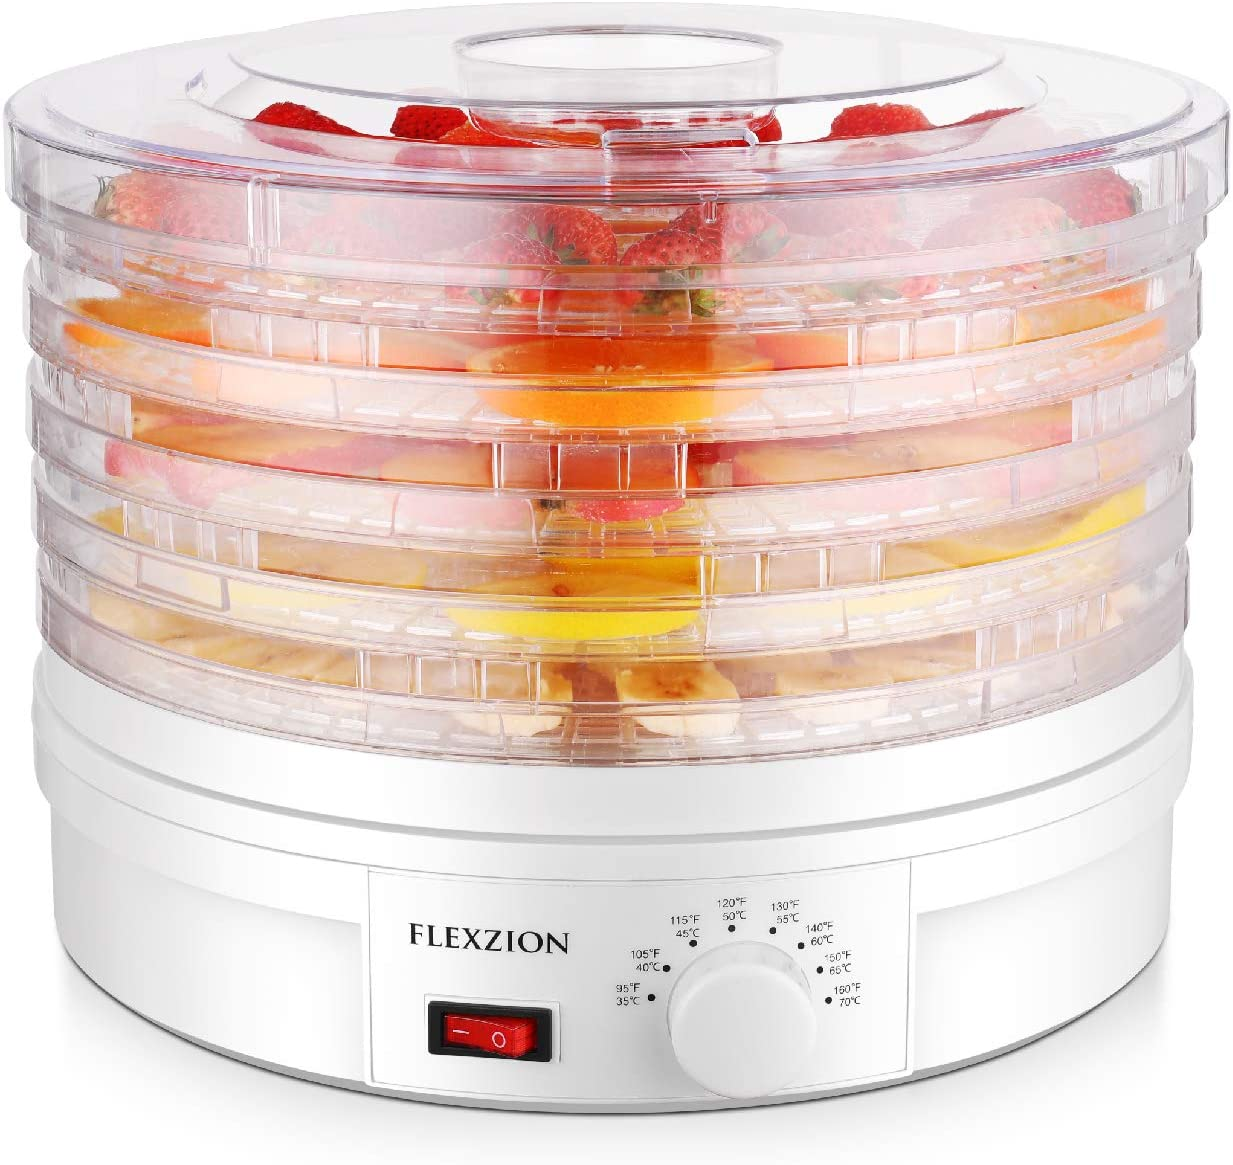 Flexzion Dehydrator for Food Fruit – Electric Food Saver Fruit Dehydrator Preserver Dry Fruit Dehydration Machine with 5 Stackable Tray